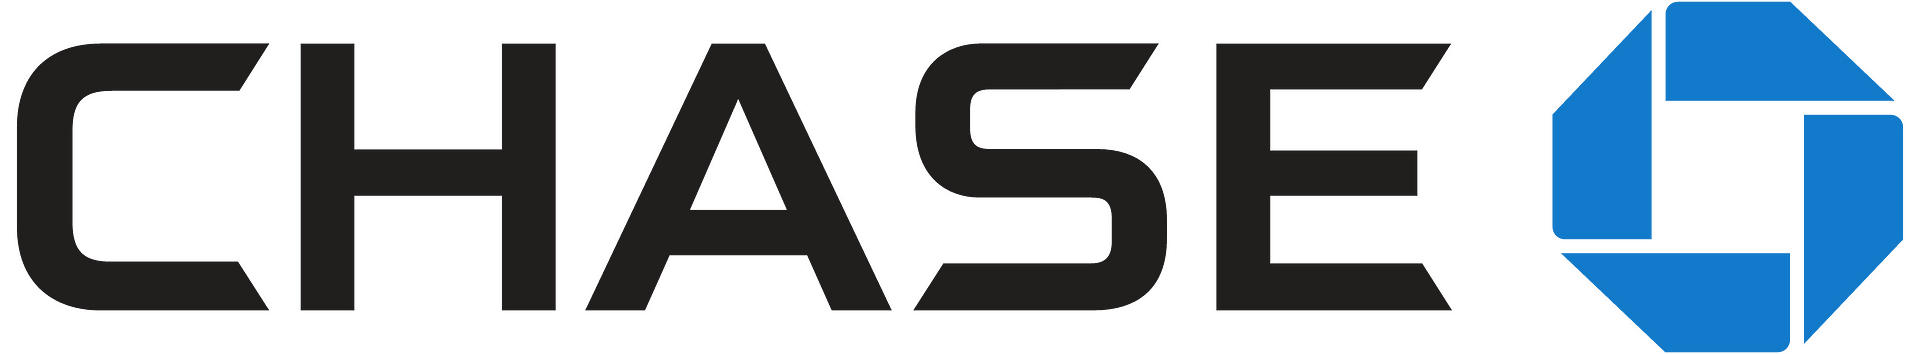 logo for chase